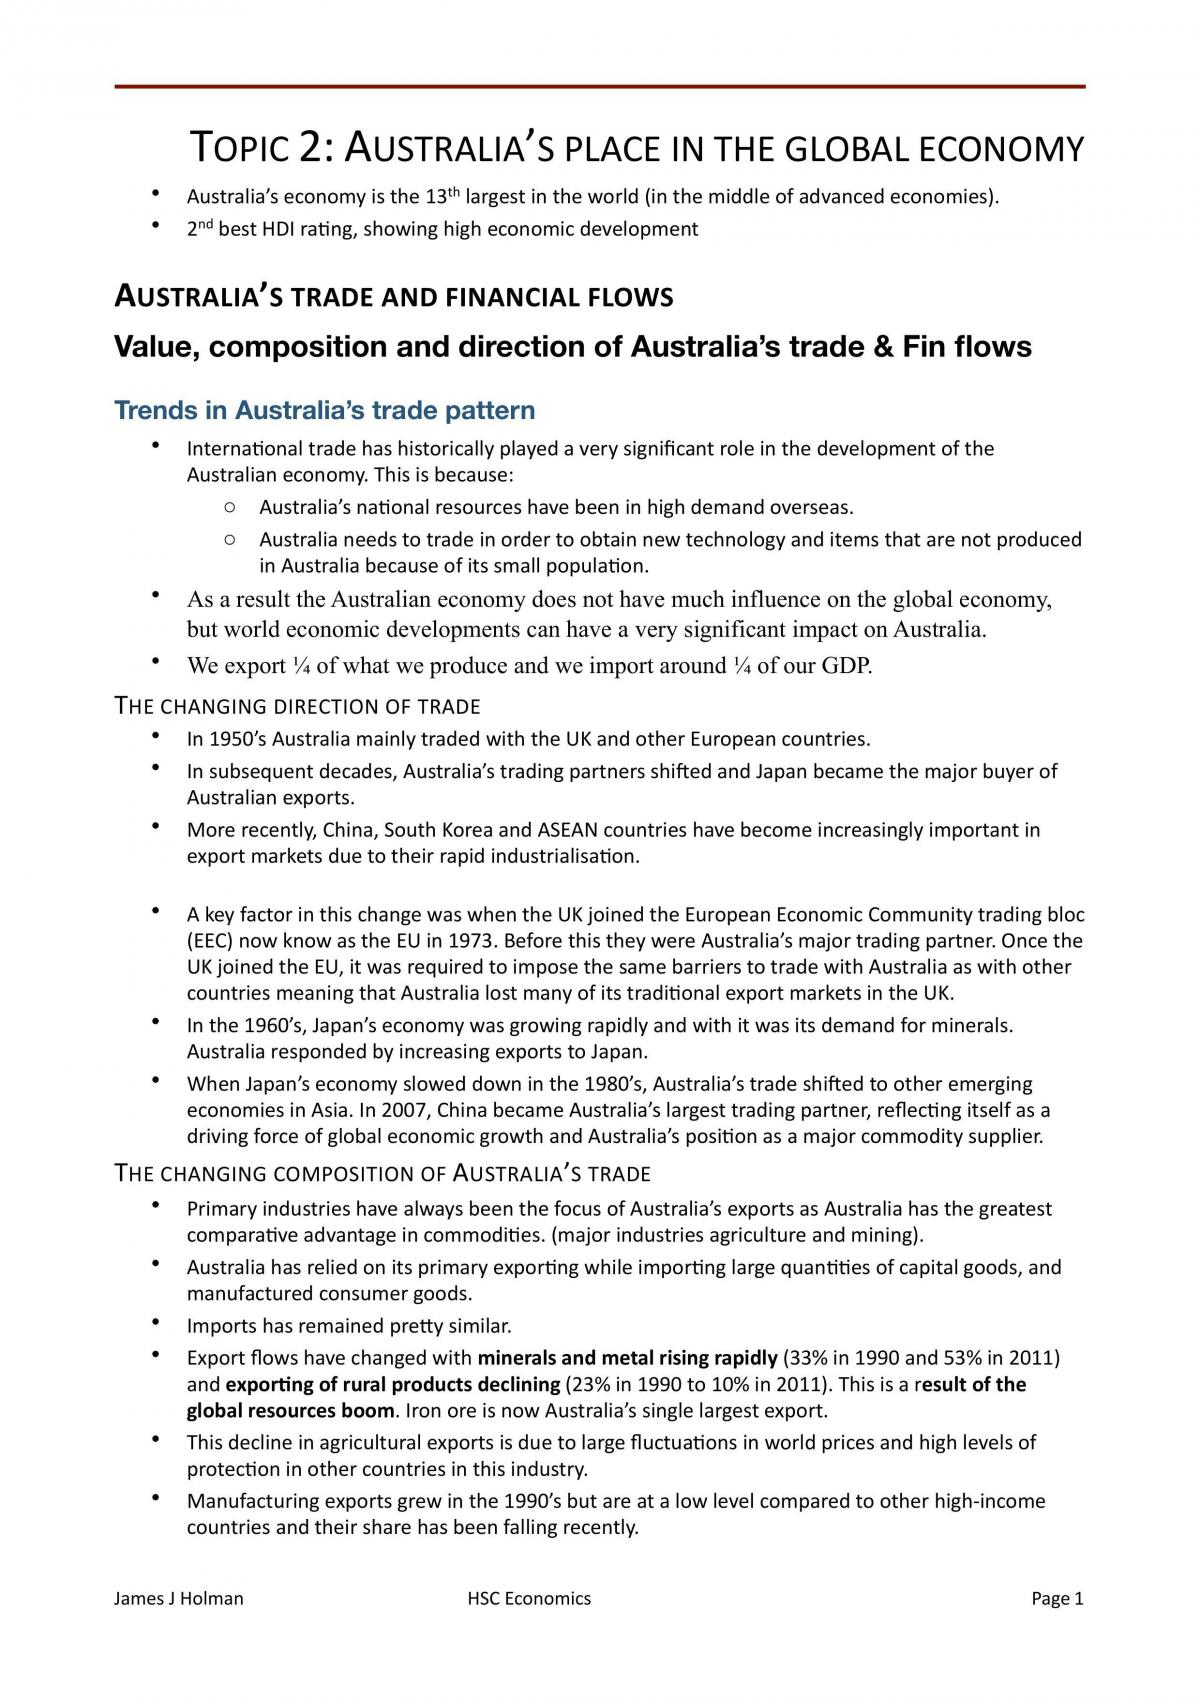 Australia's Place in the Global Economy - Page 1